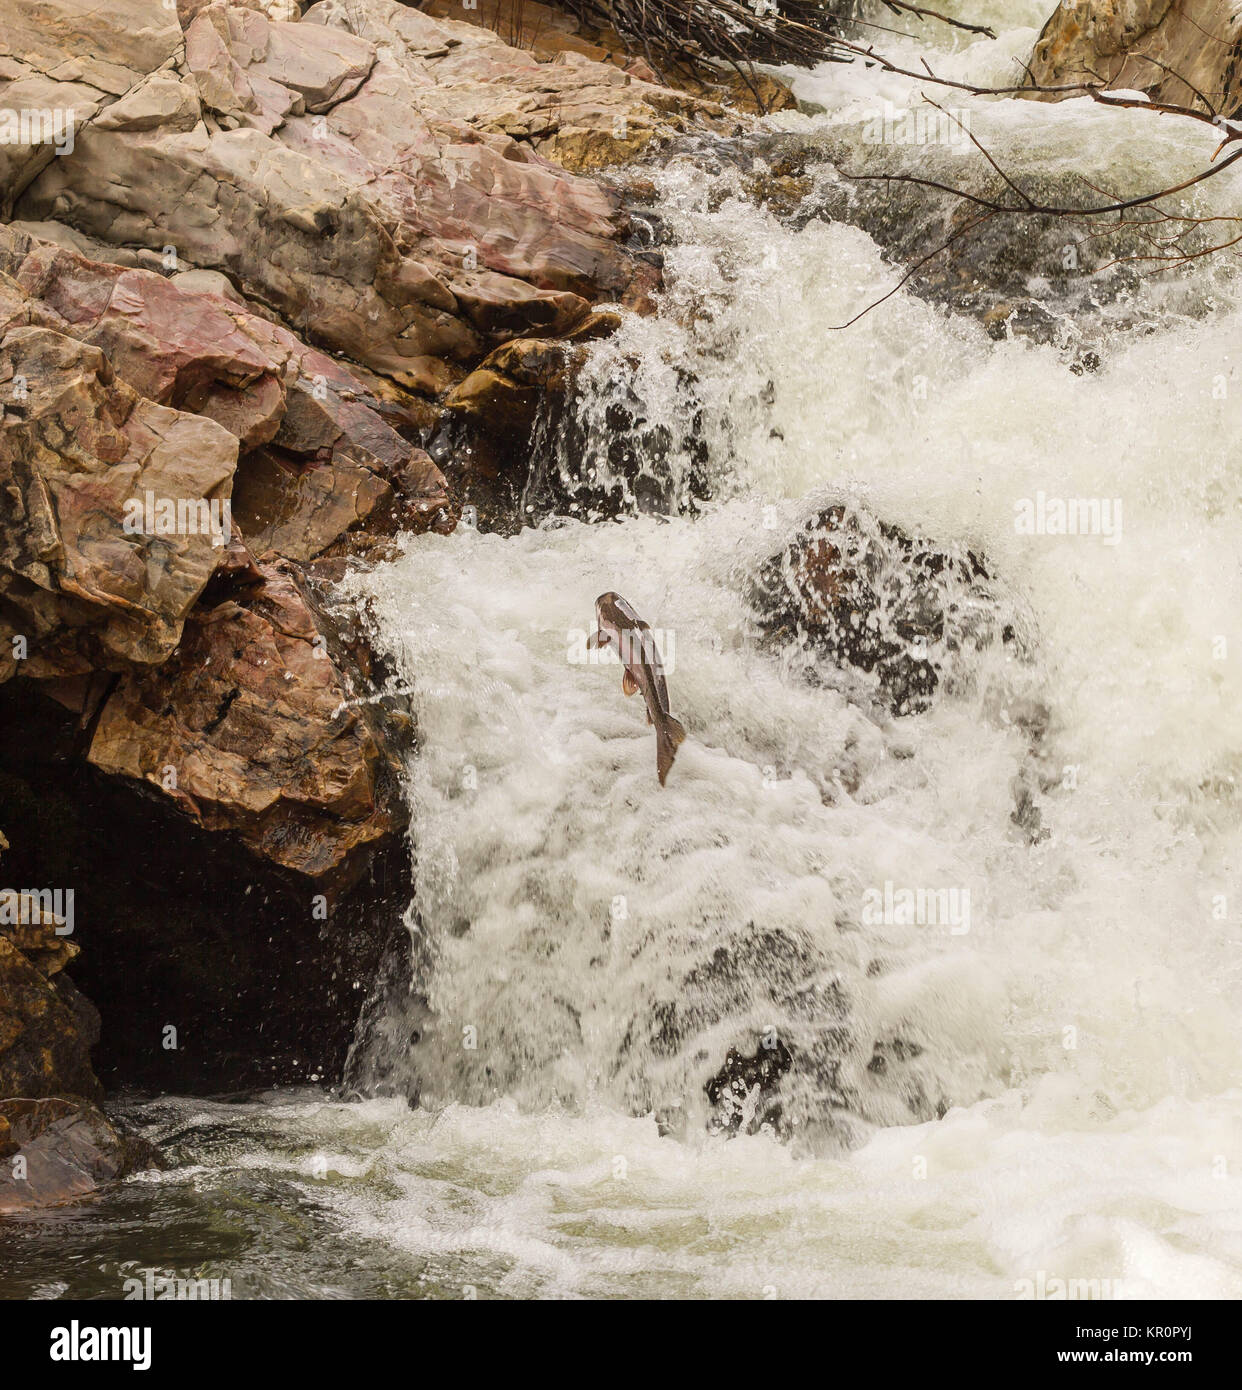 Heading Home- A Steelhead Returns to Spawn - Stock Image